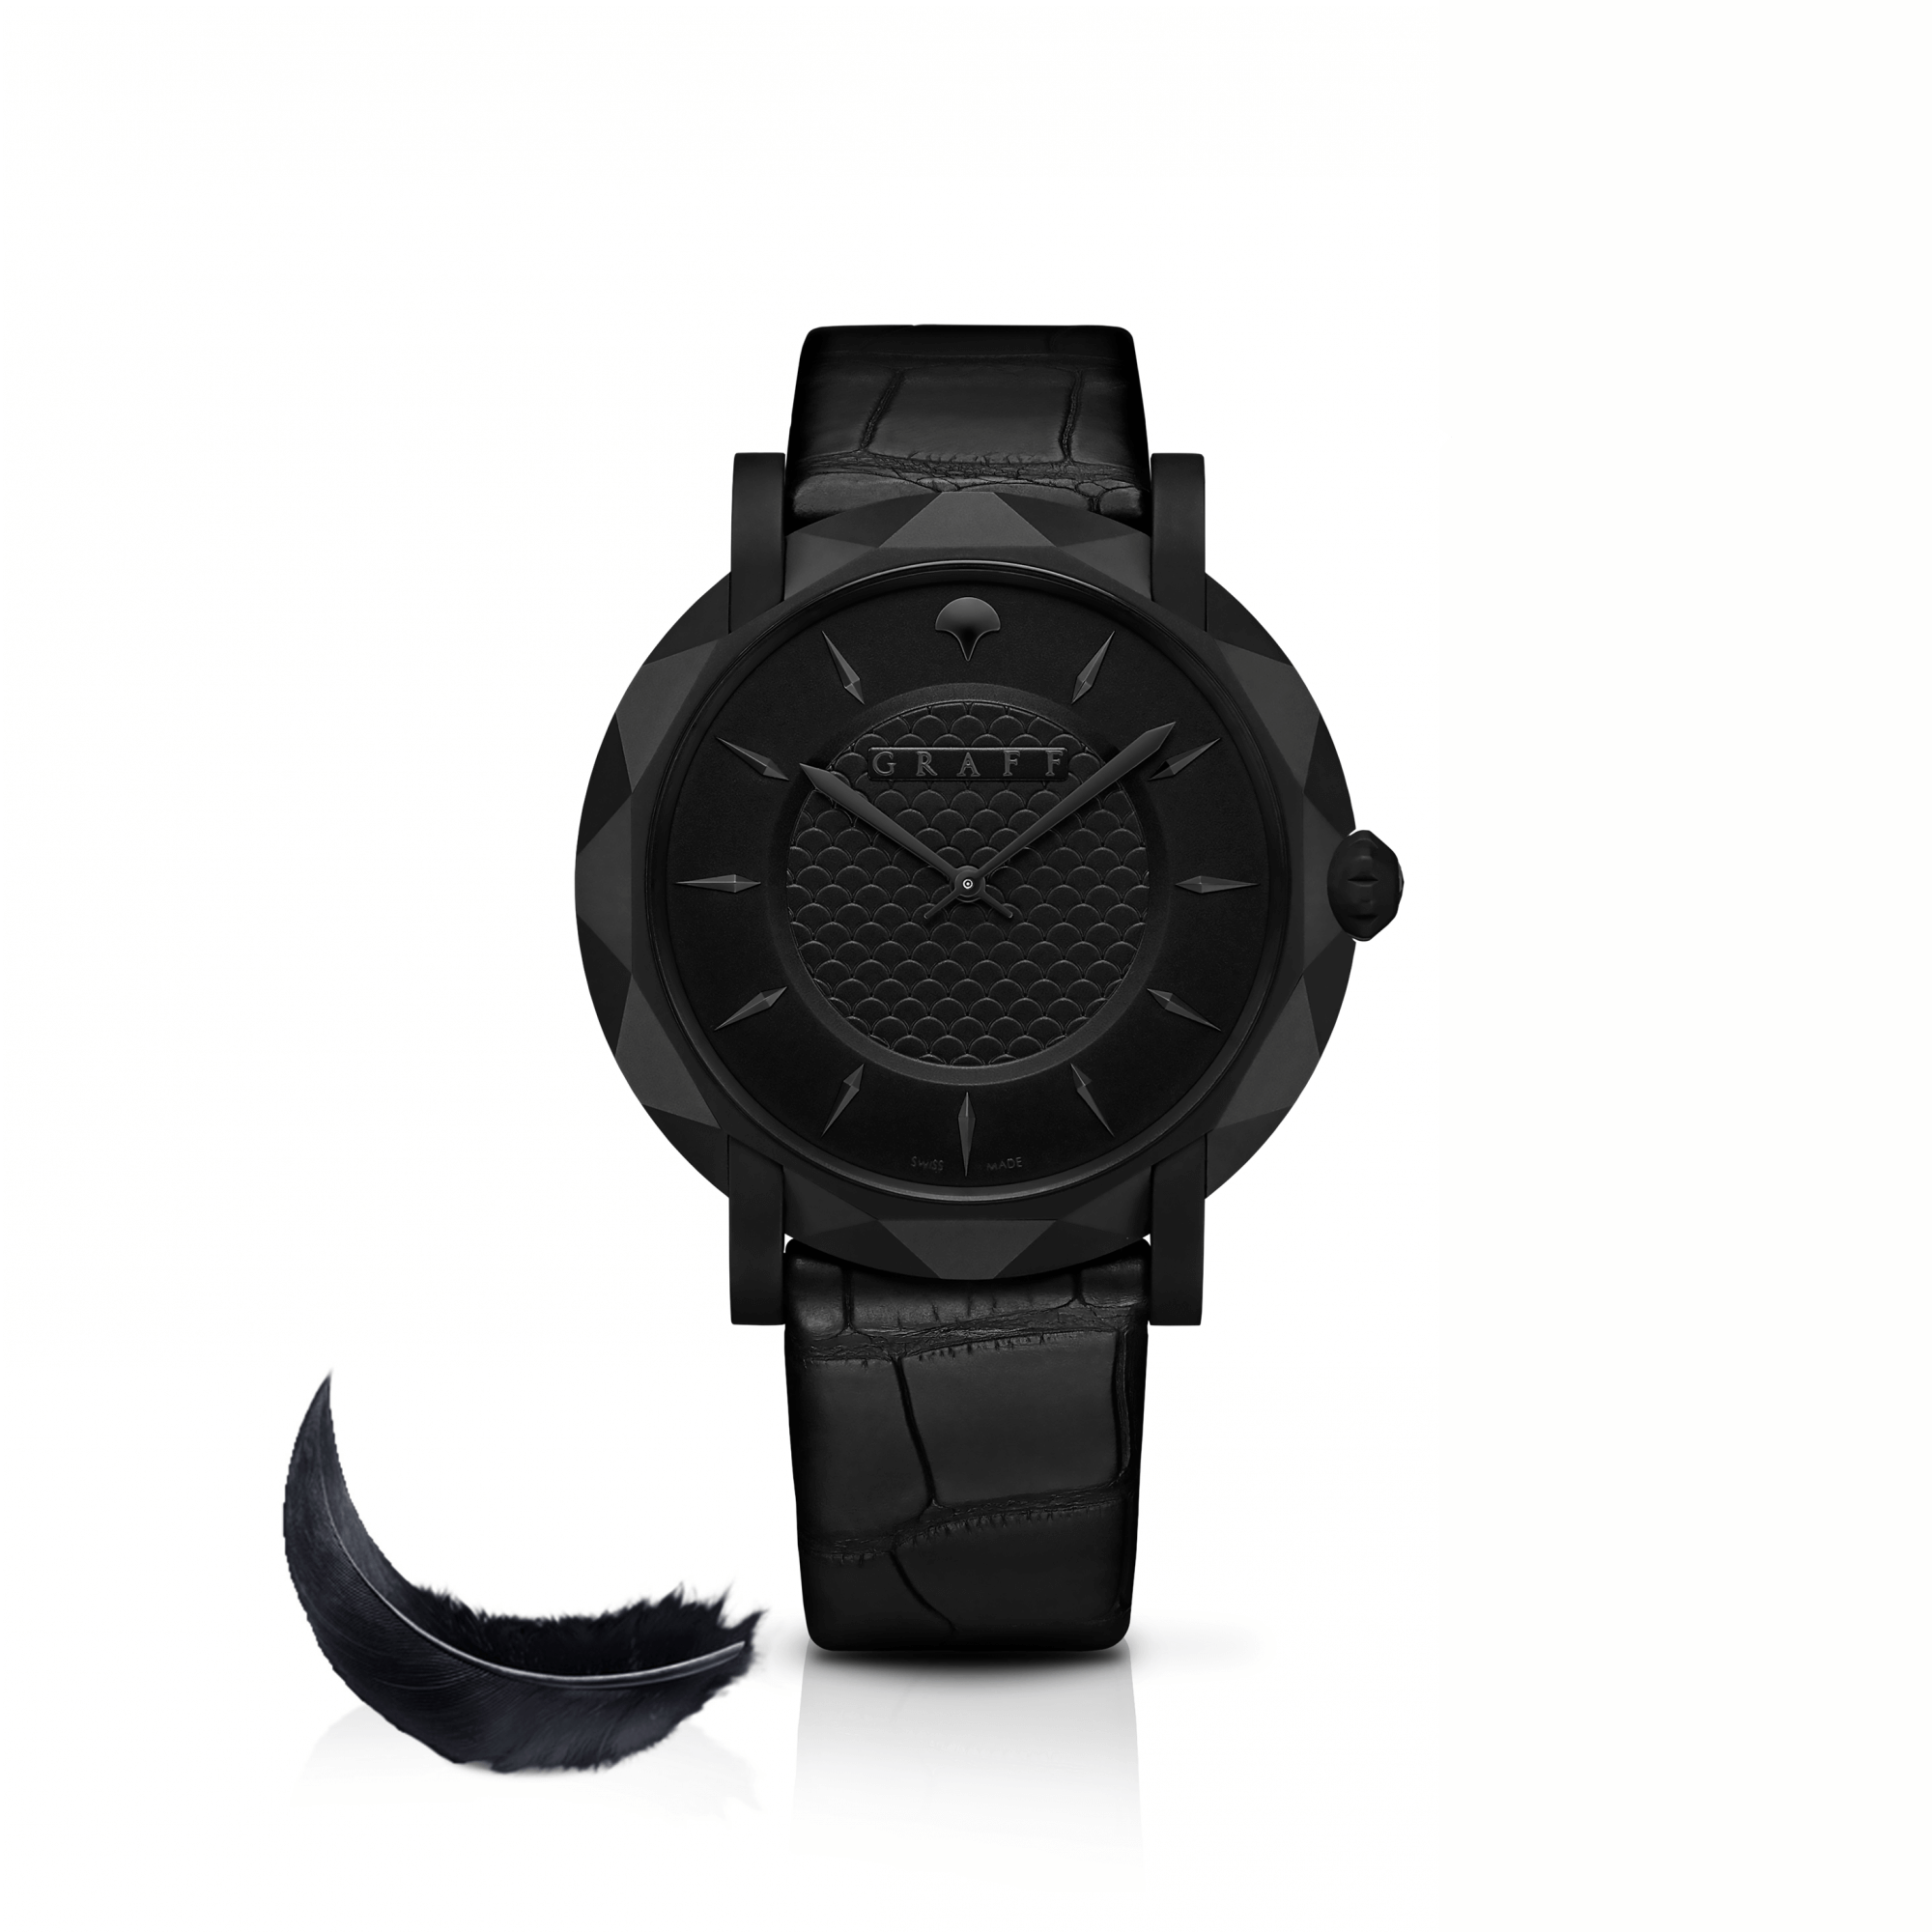 Graff Slim Eclipse 43mm Watch BLACK DIAL, TITANIUM DLC with a black feather on the side